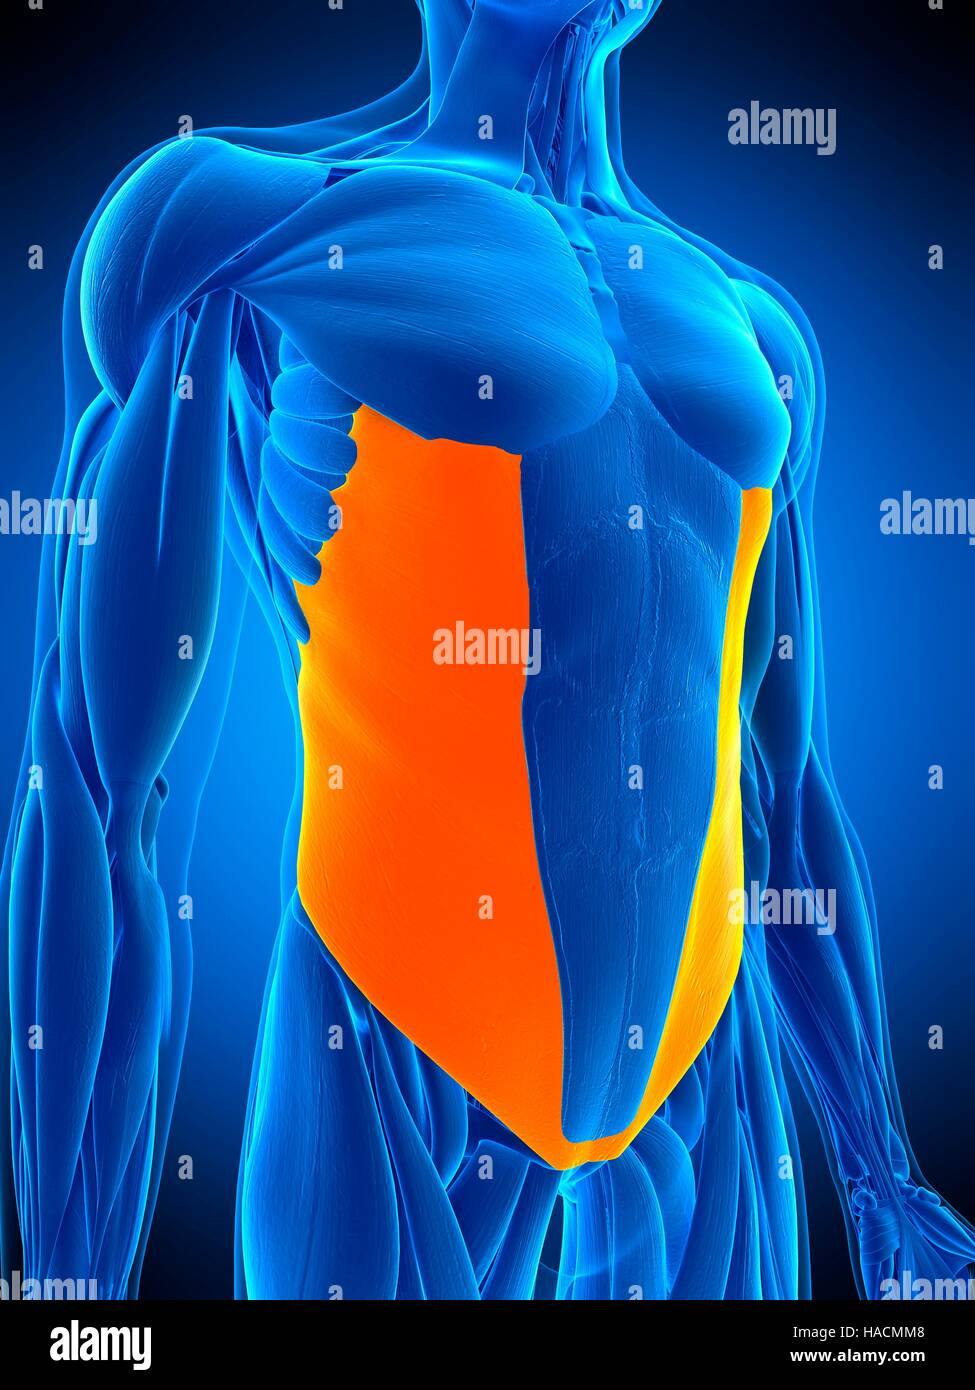 Illustration Of The External Oblique Muscle Stock Photo 126898808